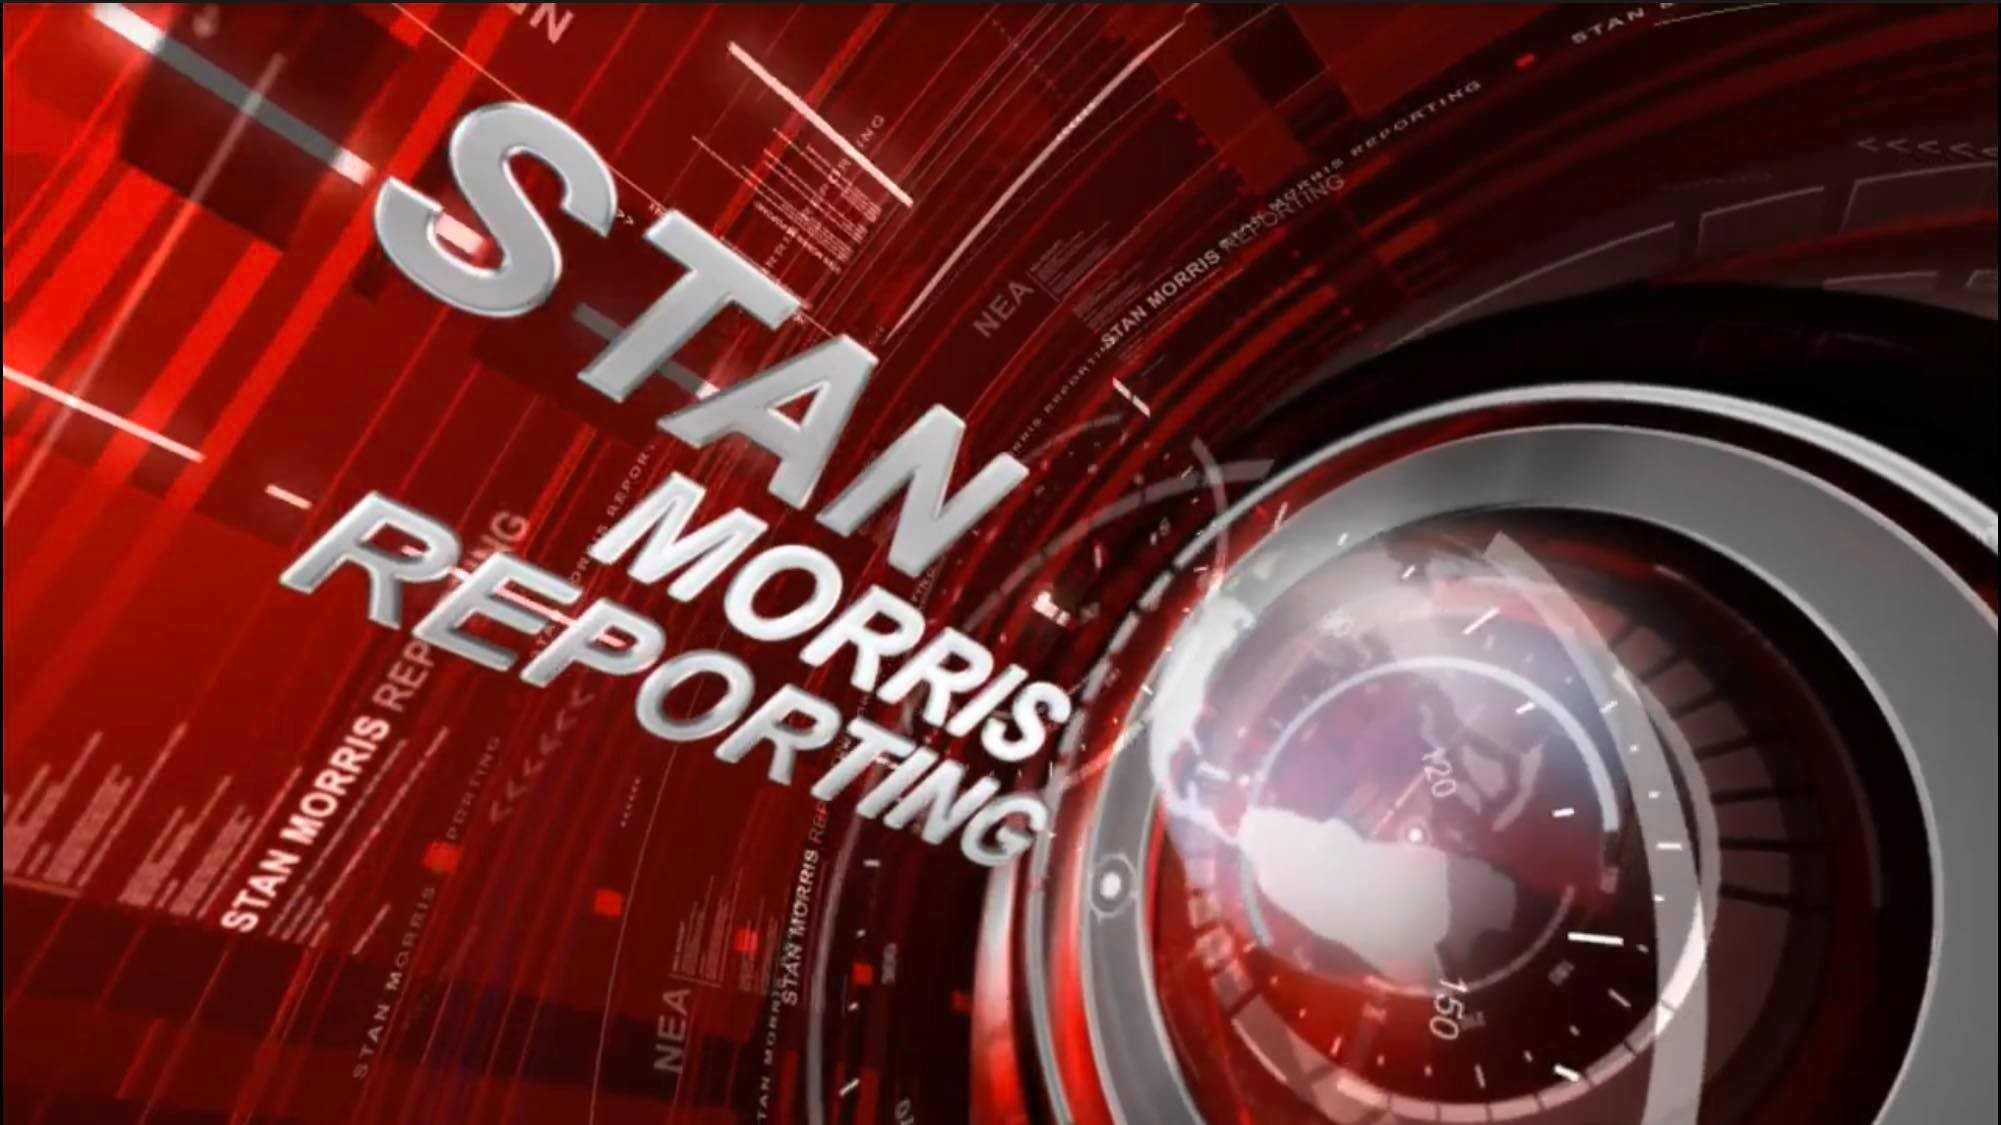 Stan Morris Reporting on Friday, Nov. 17, 2017